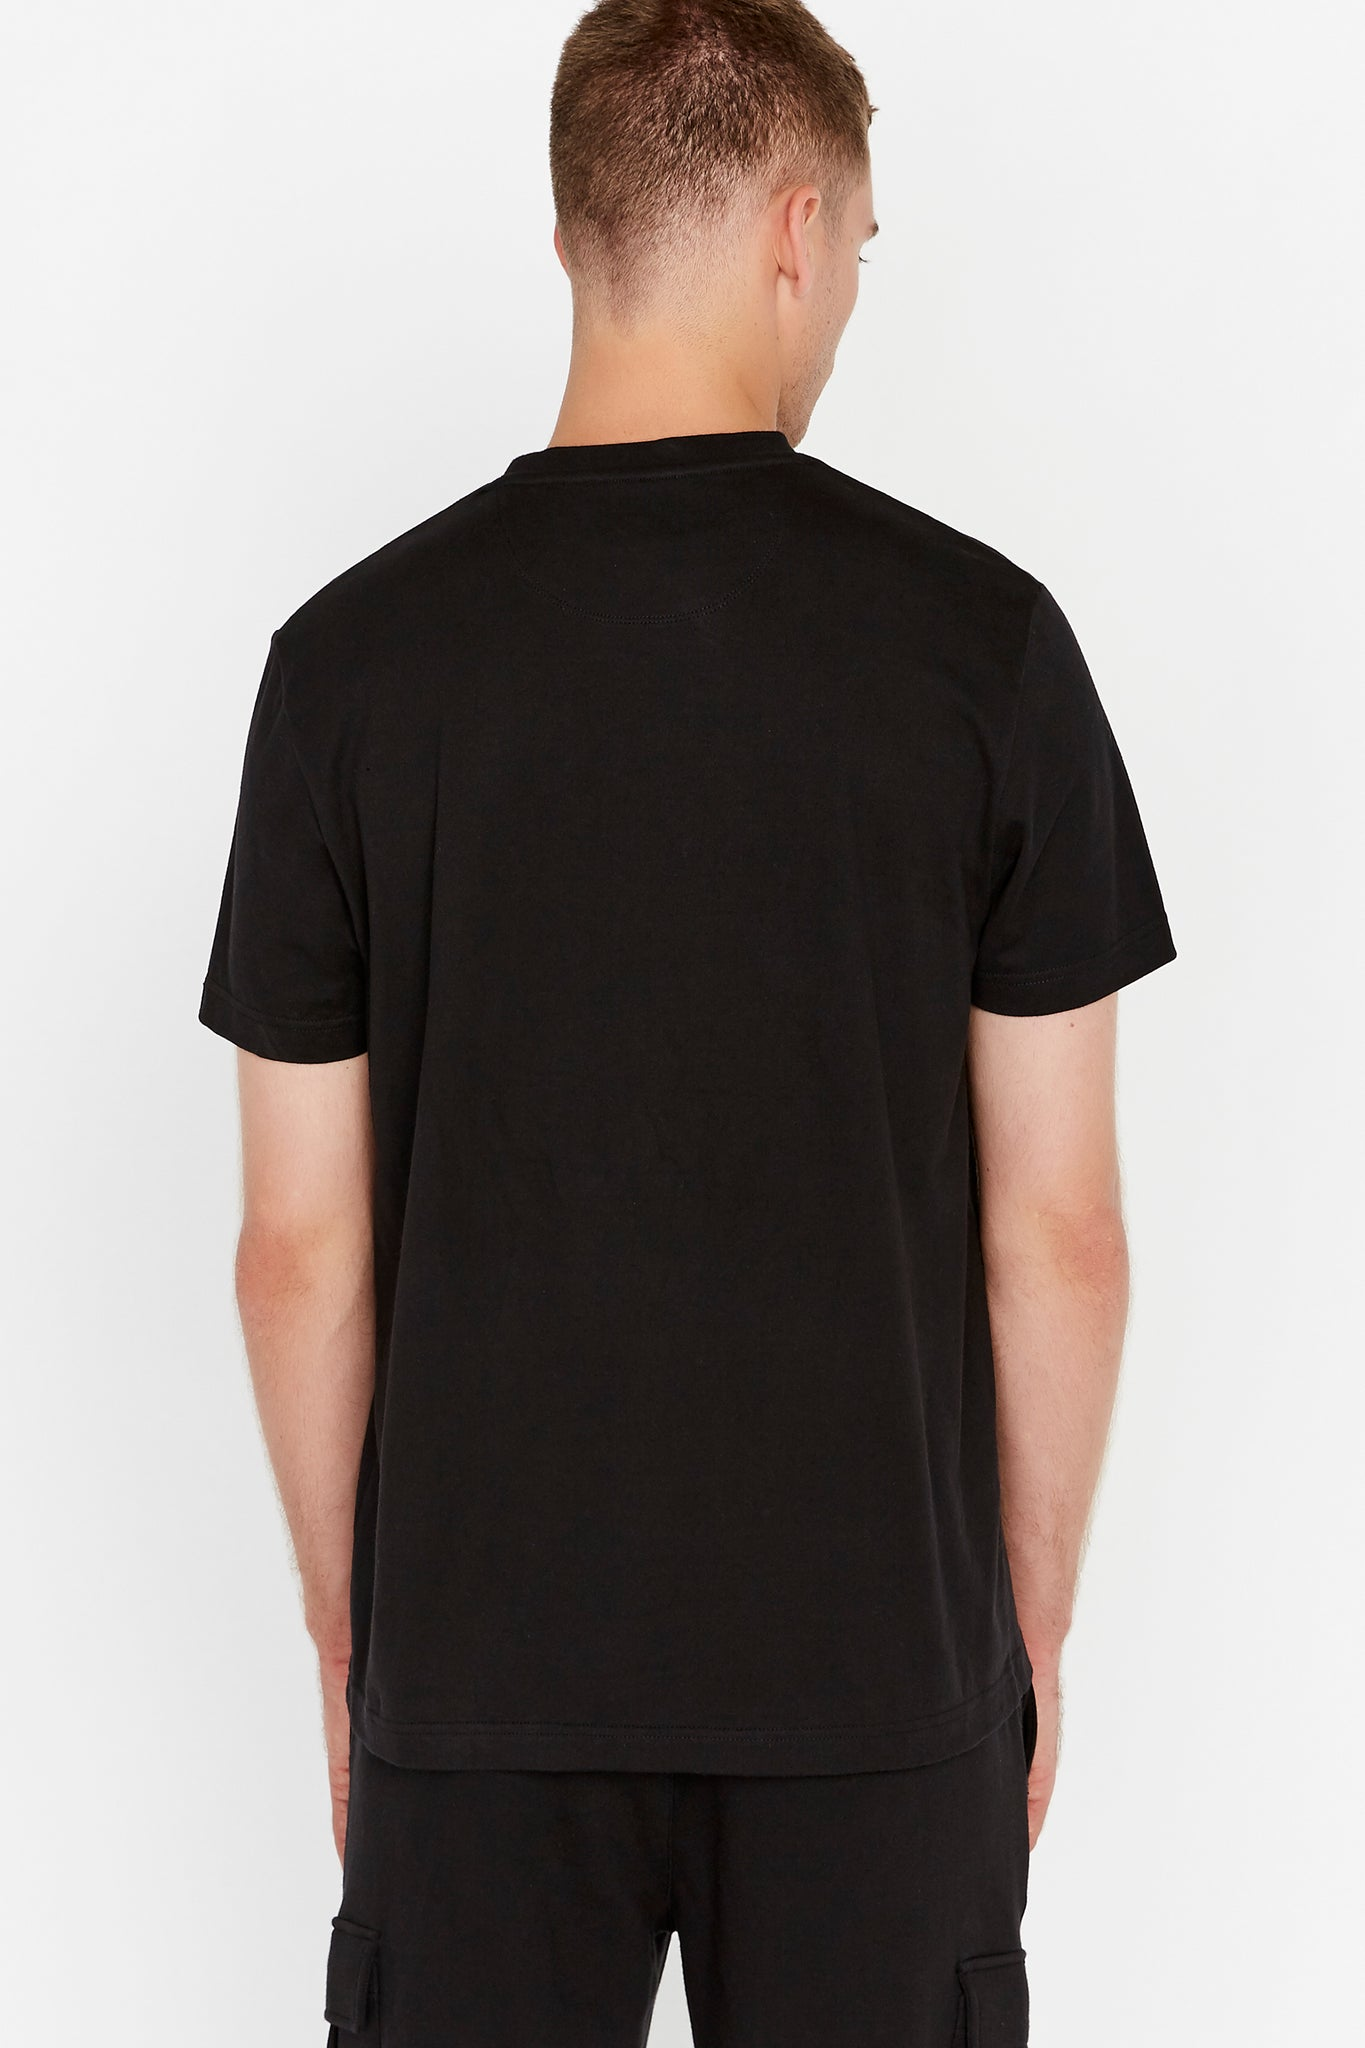 Back view of men wearing a black short sleeve crew T-shirt